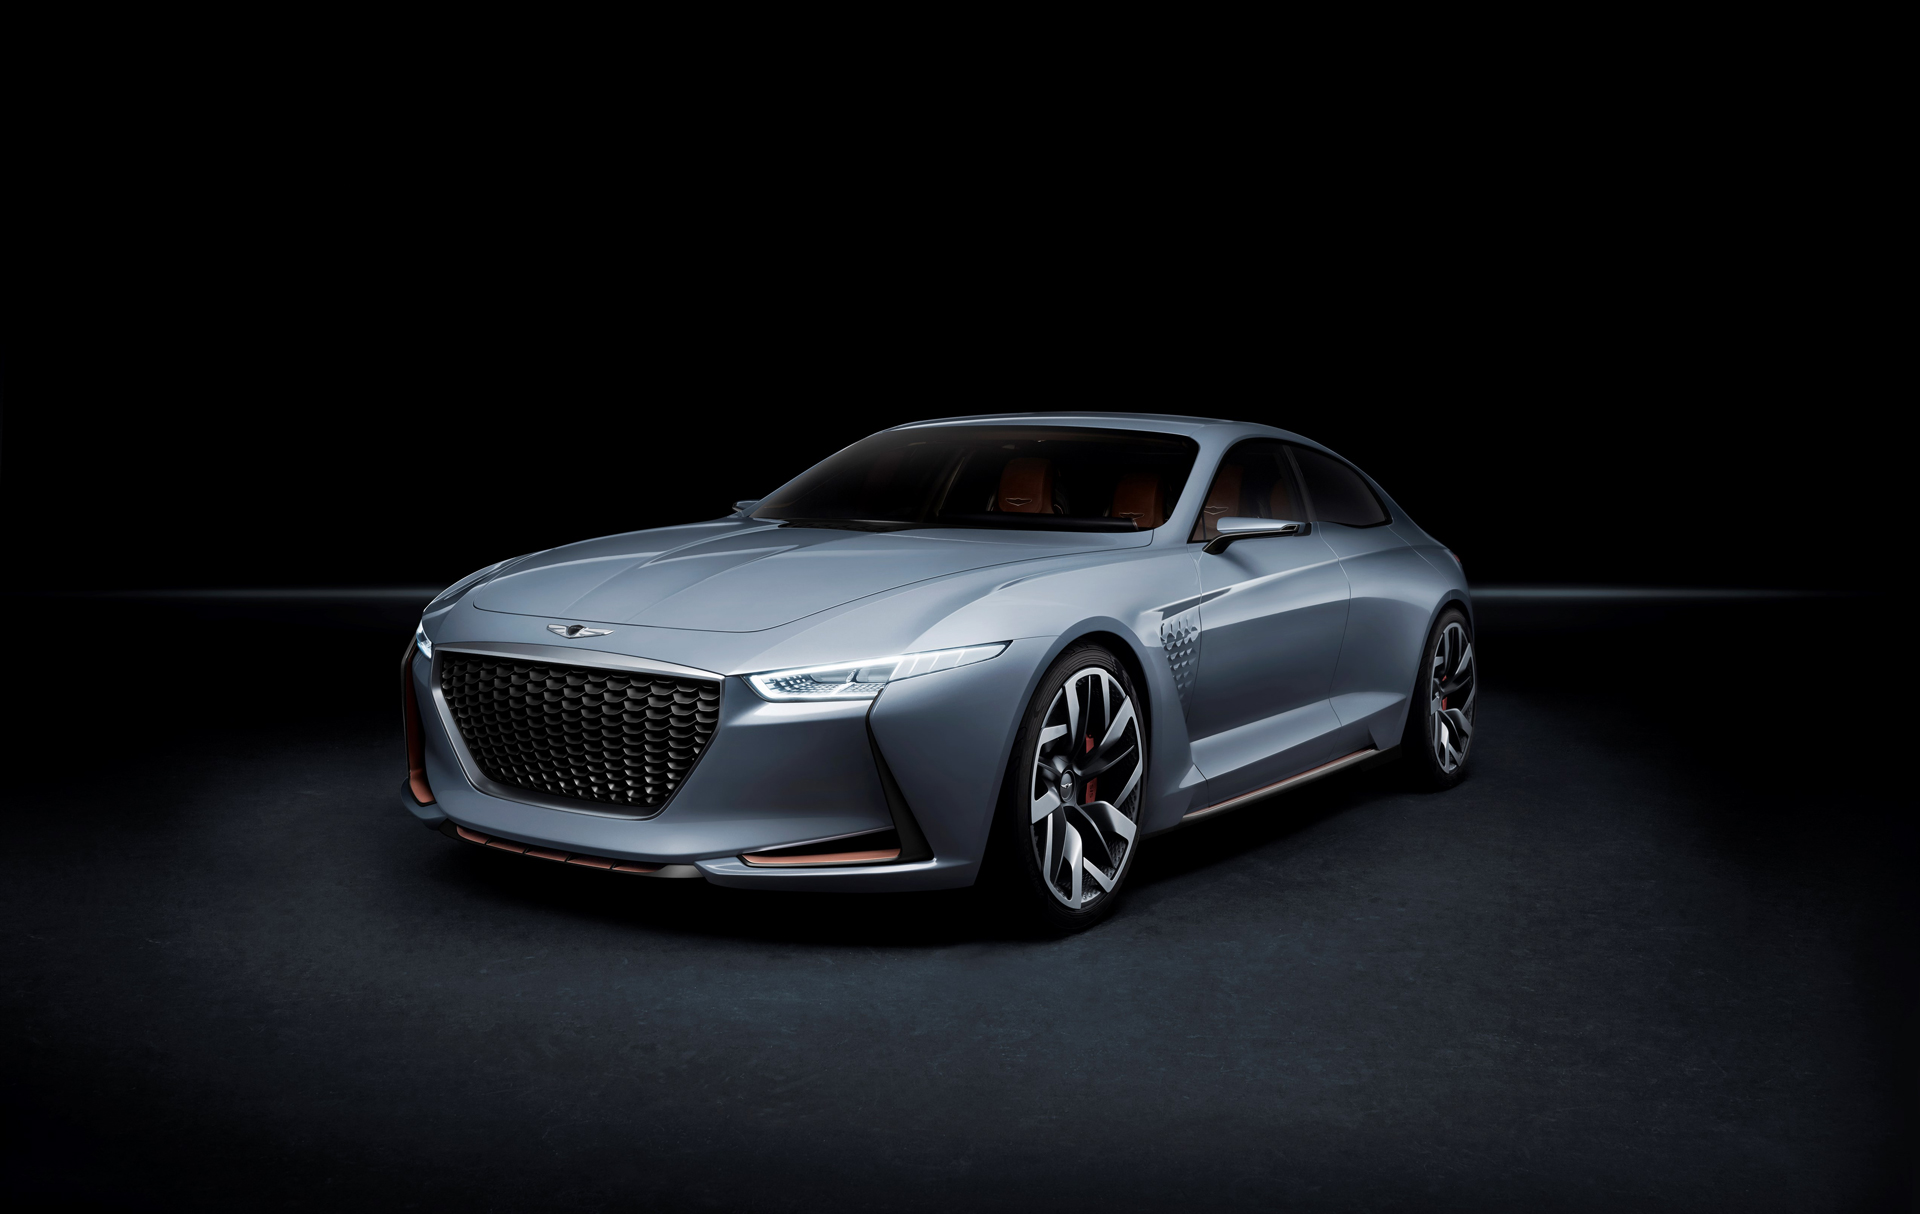 Genesis New York Concept - 2016 - front side-face / profil avant